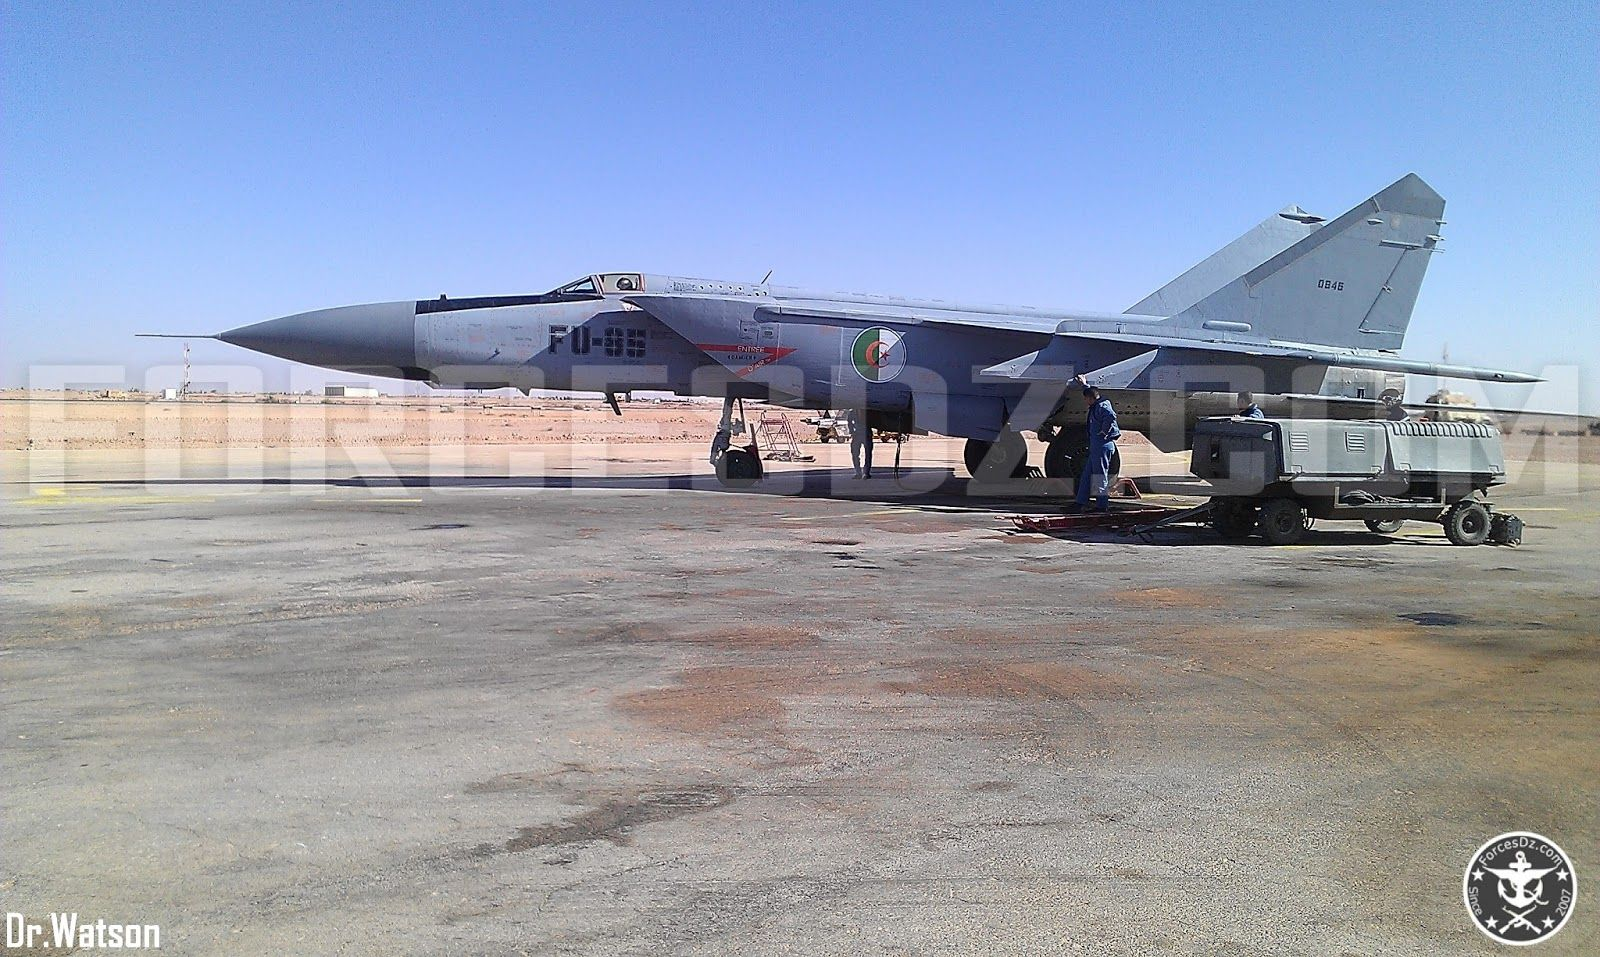 Algerian Air Force MiG-25PD, which appears to be in good